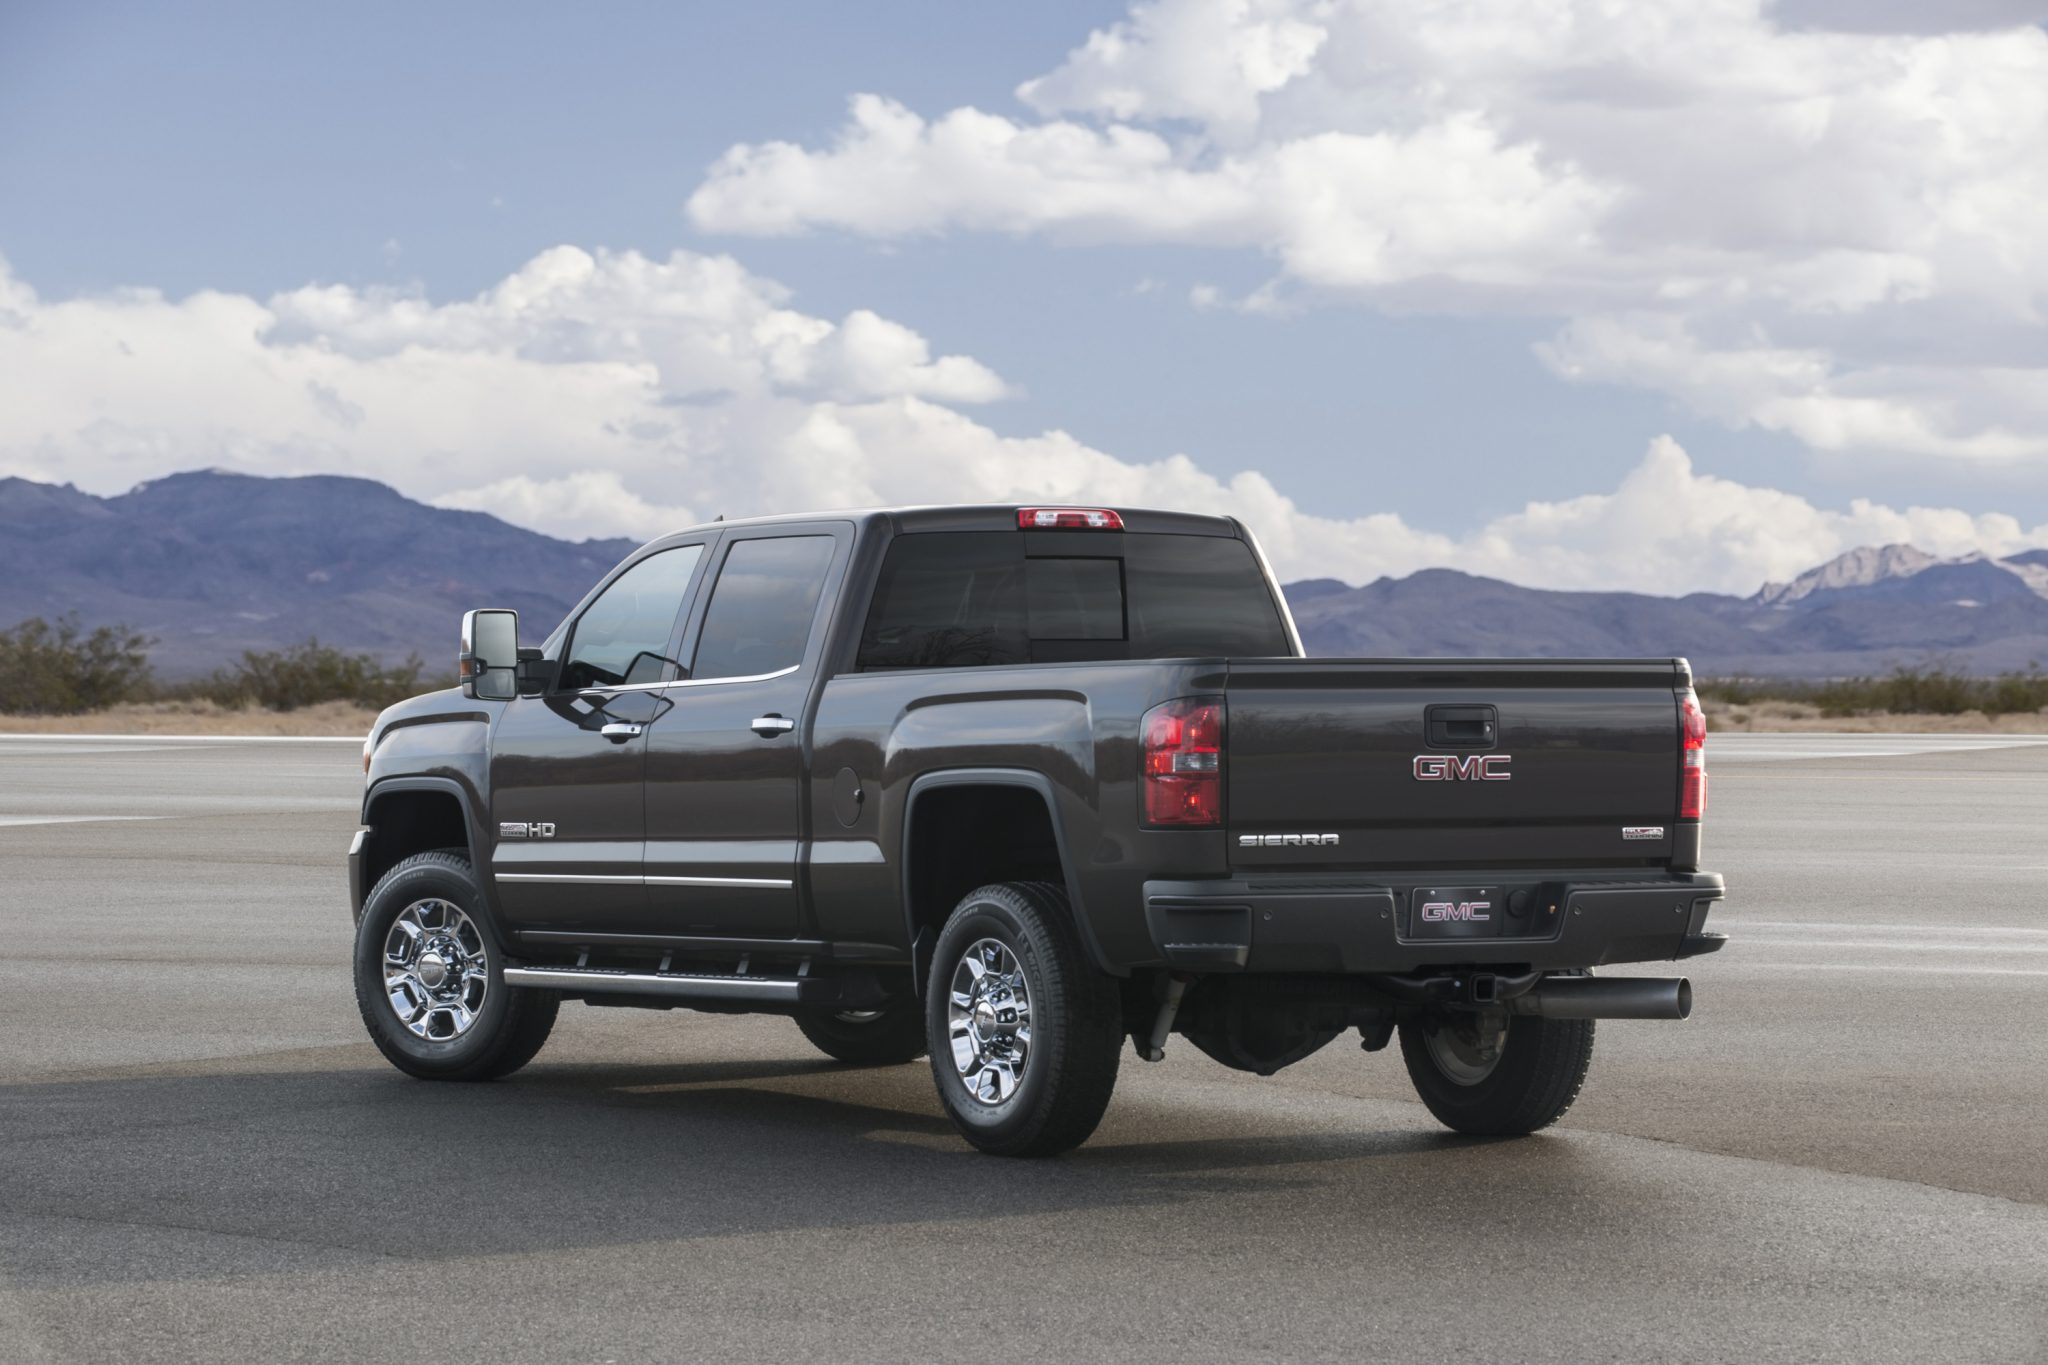 hd all detail and terrain capable sierra us en news pages content media new sep comfortable smart gmc